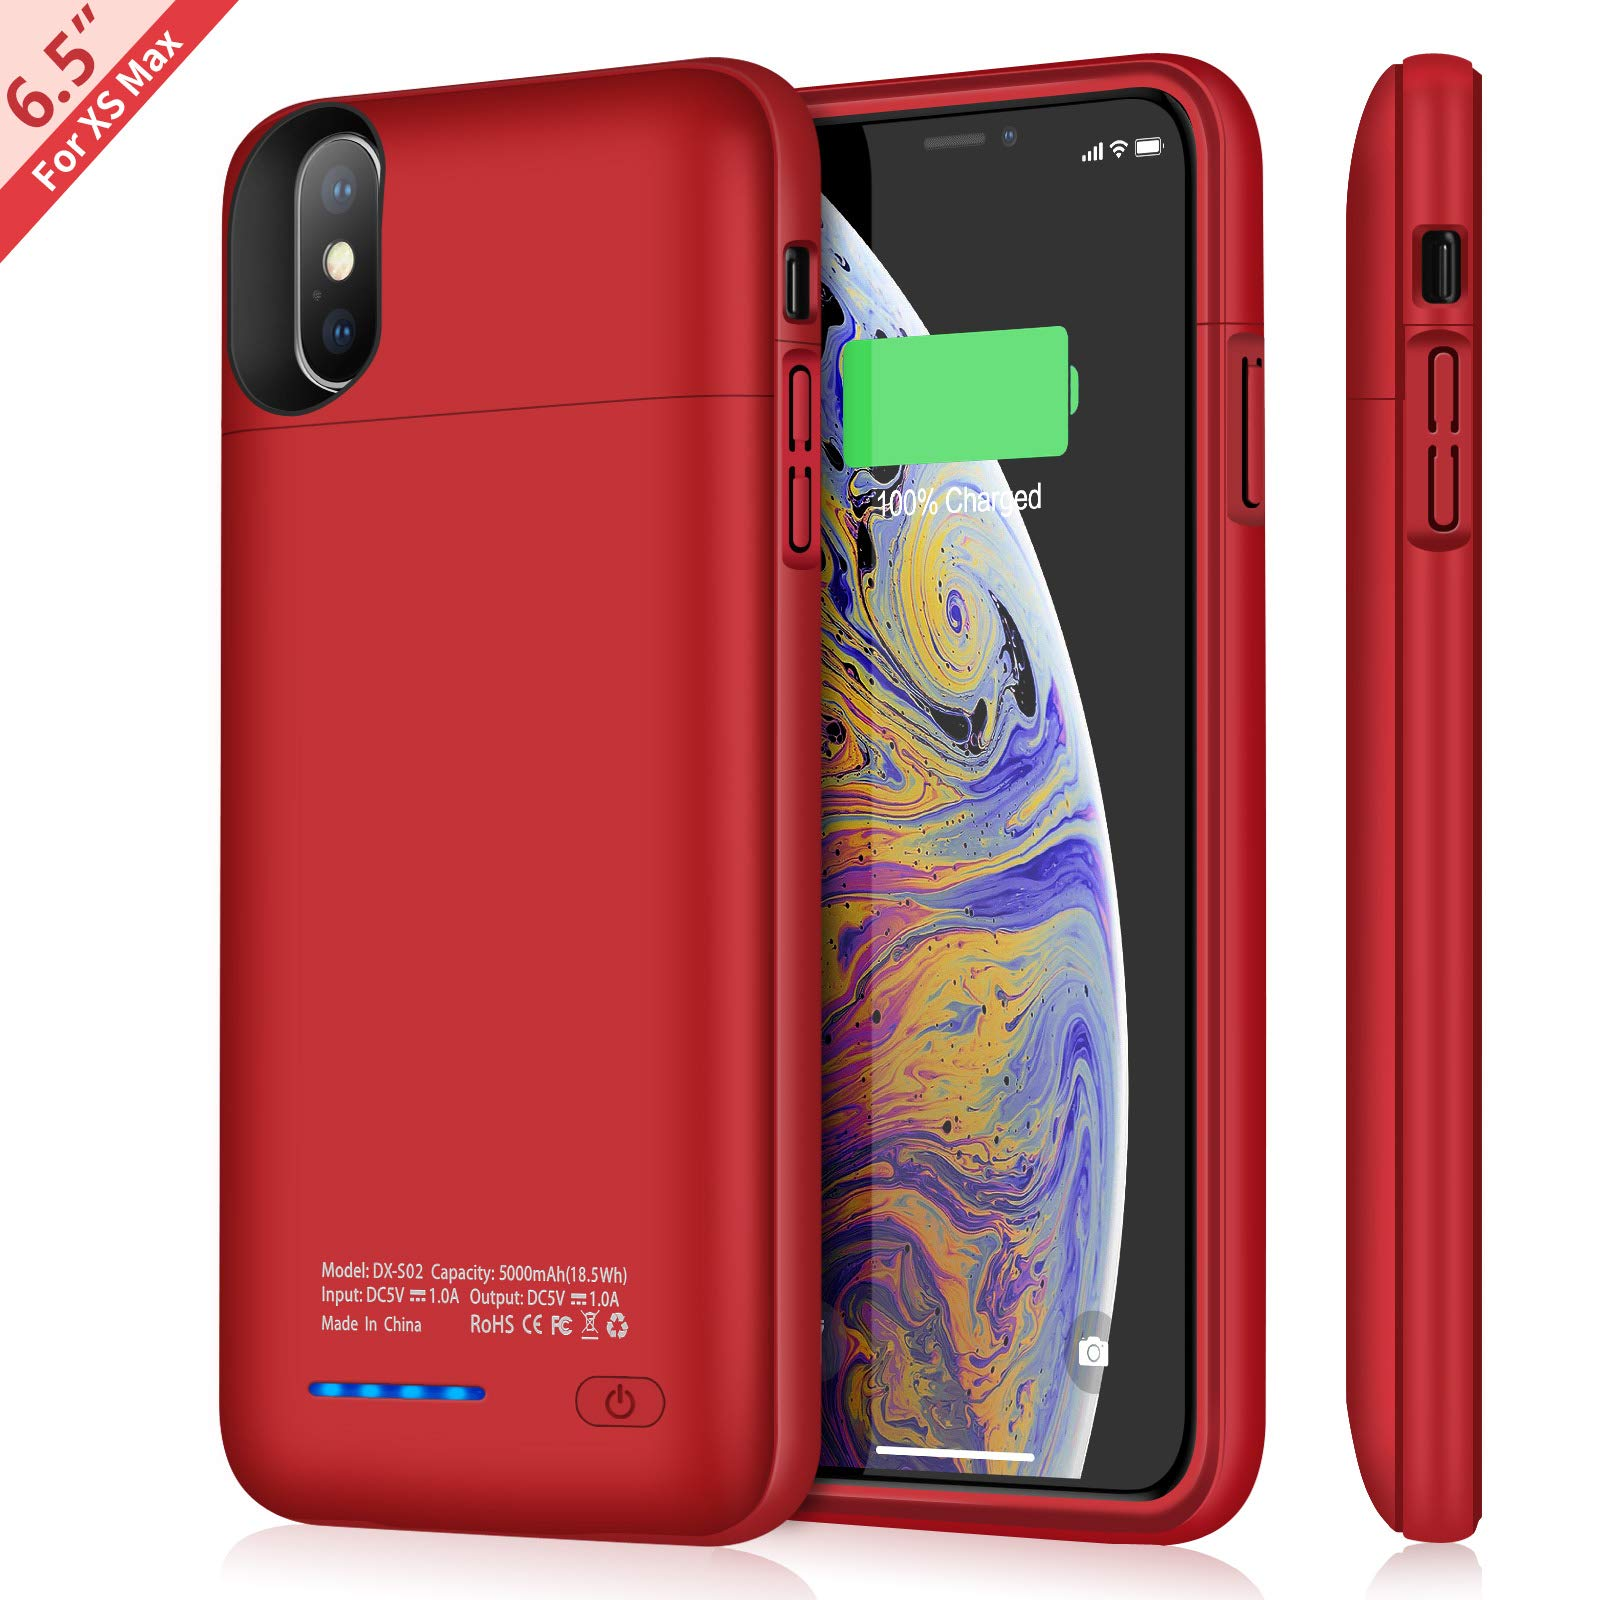 Funda Con Bateria de 5000mah para Apple Iphone Xs Max TAYUZH [7PHY1NTJ]